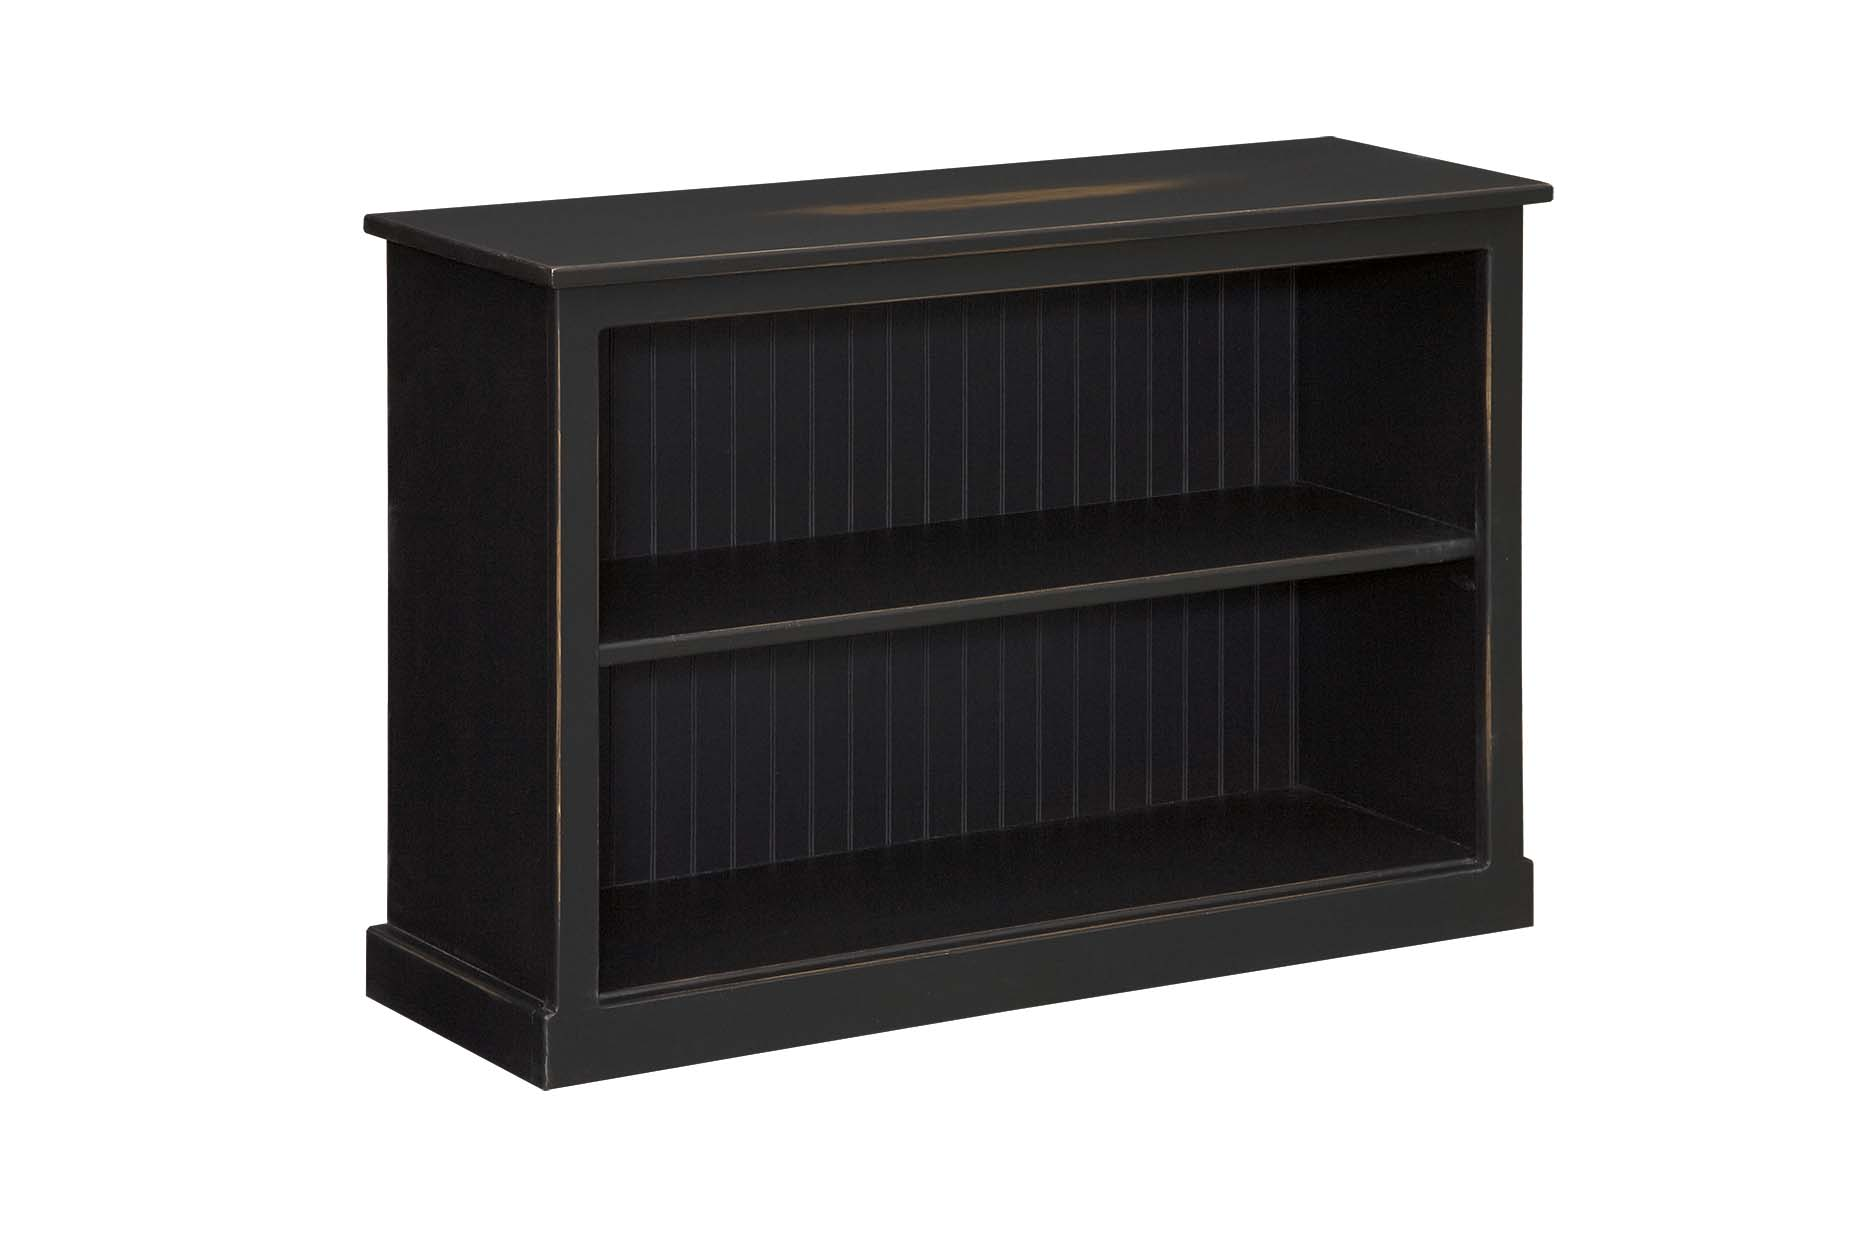 Low Bookcase Amish Furniture Connections Amish Furniture Connections